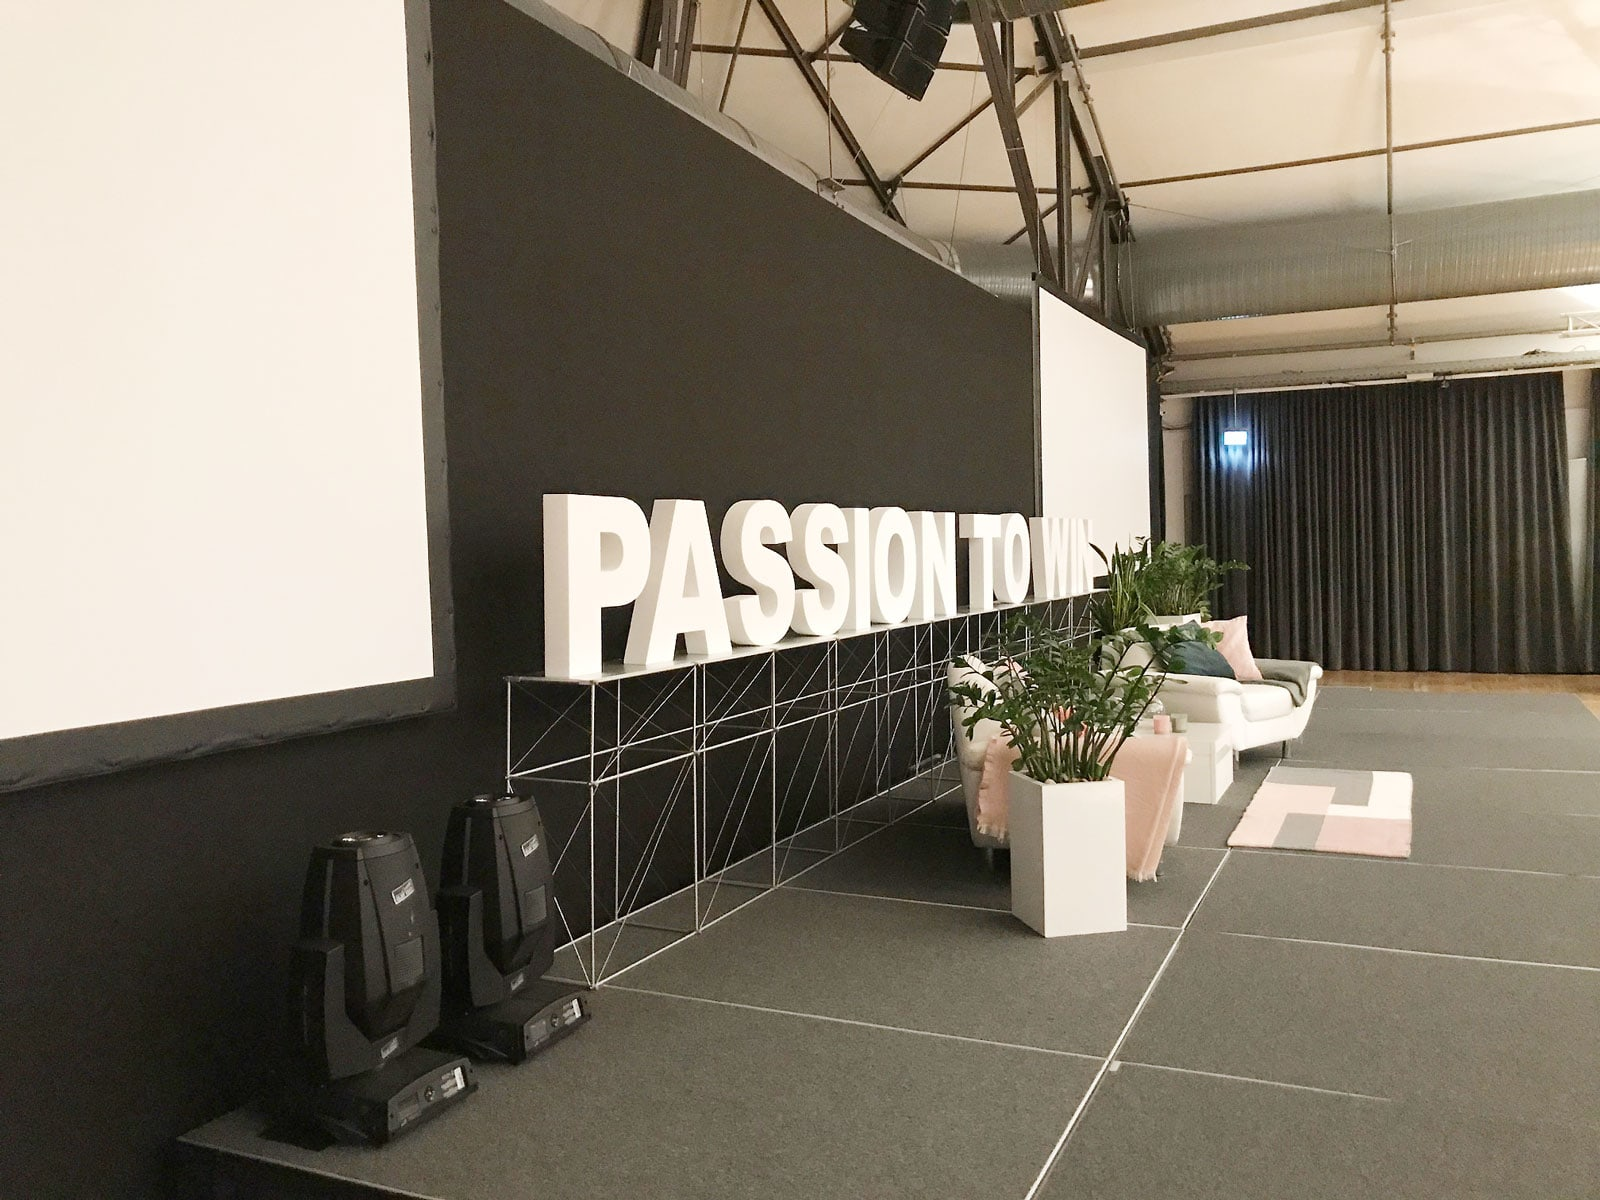 Bühne PASSION TO WIN schräg: Event Agentur creative Drummer, Berlin